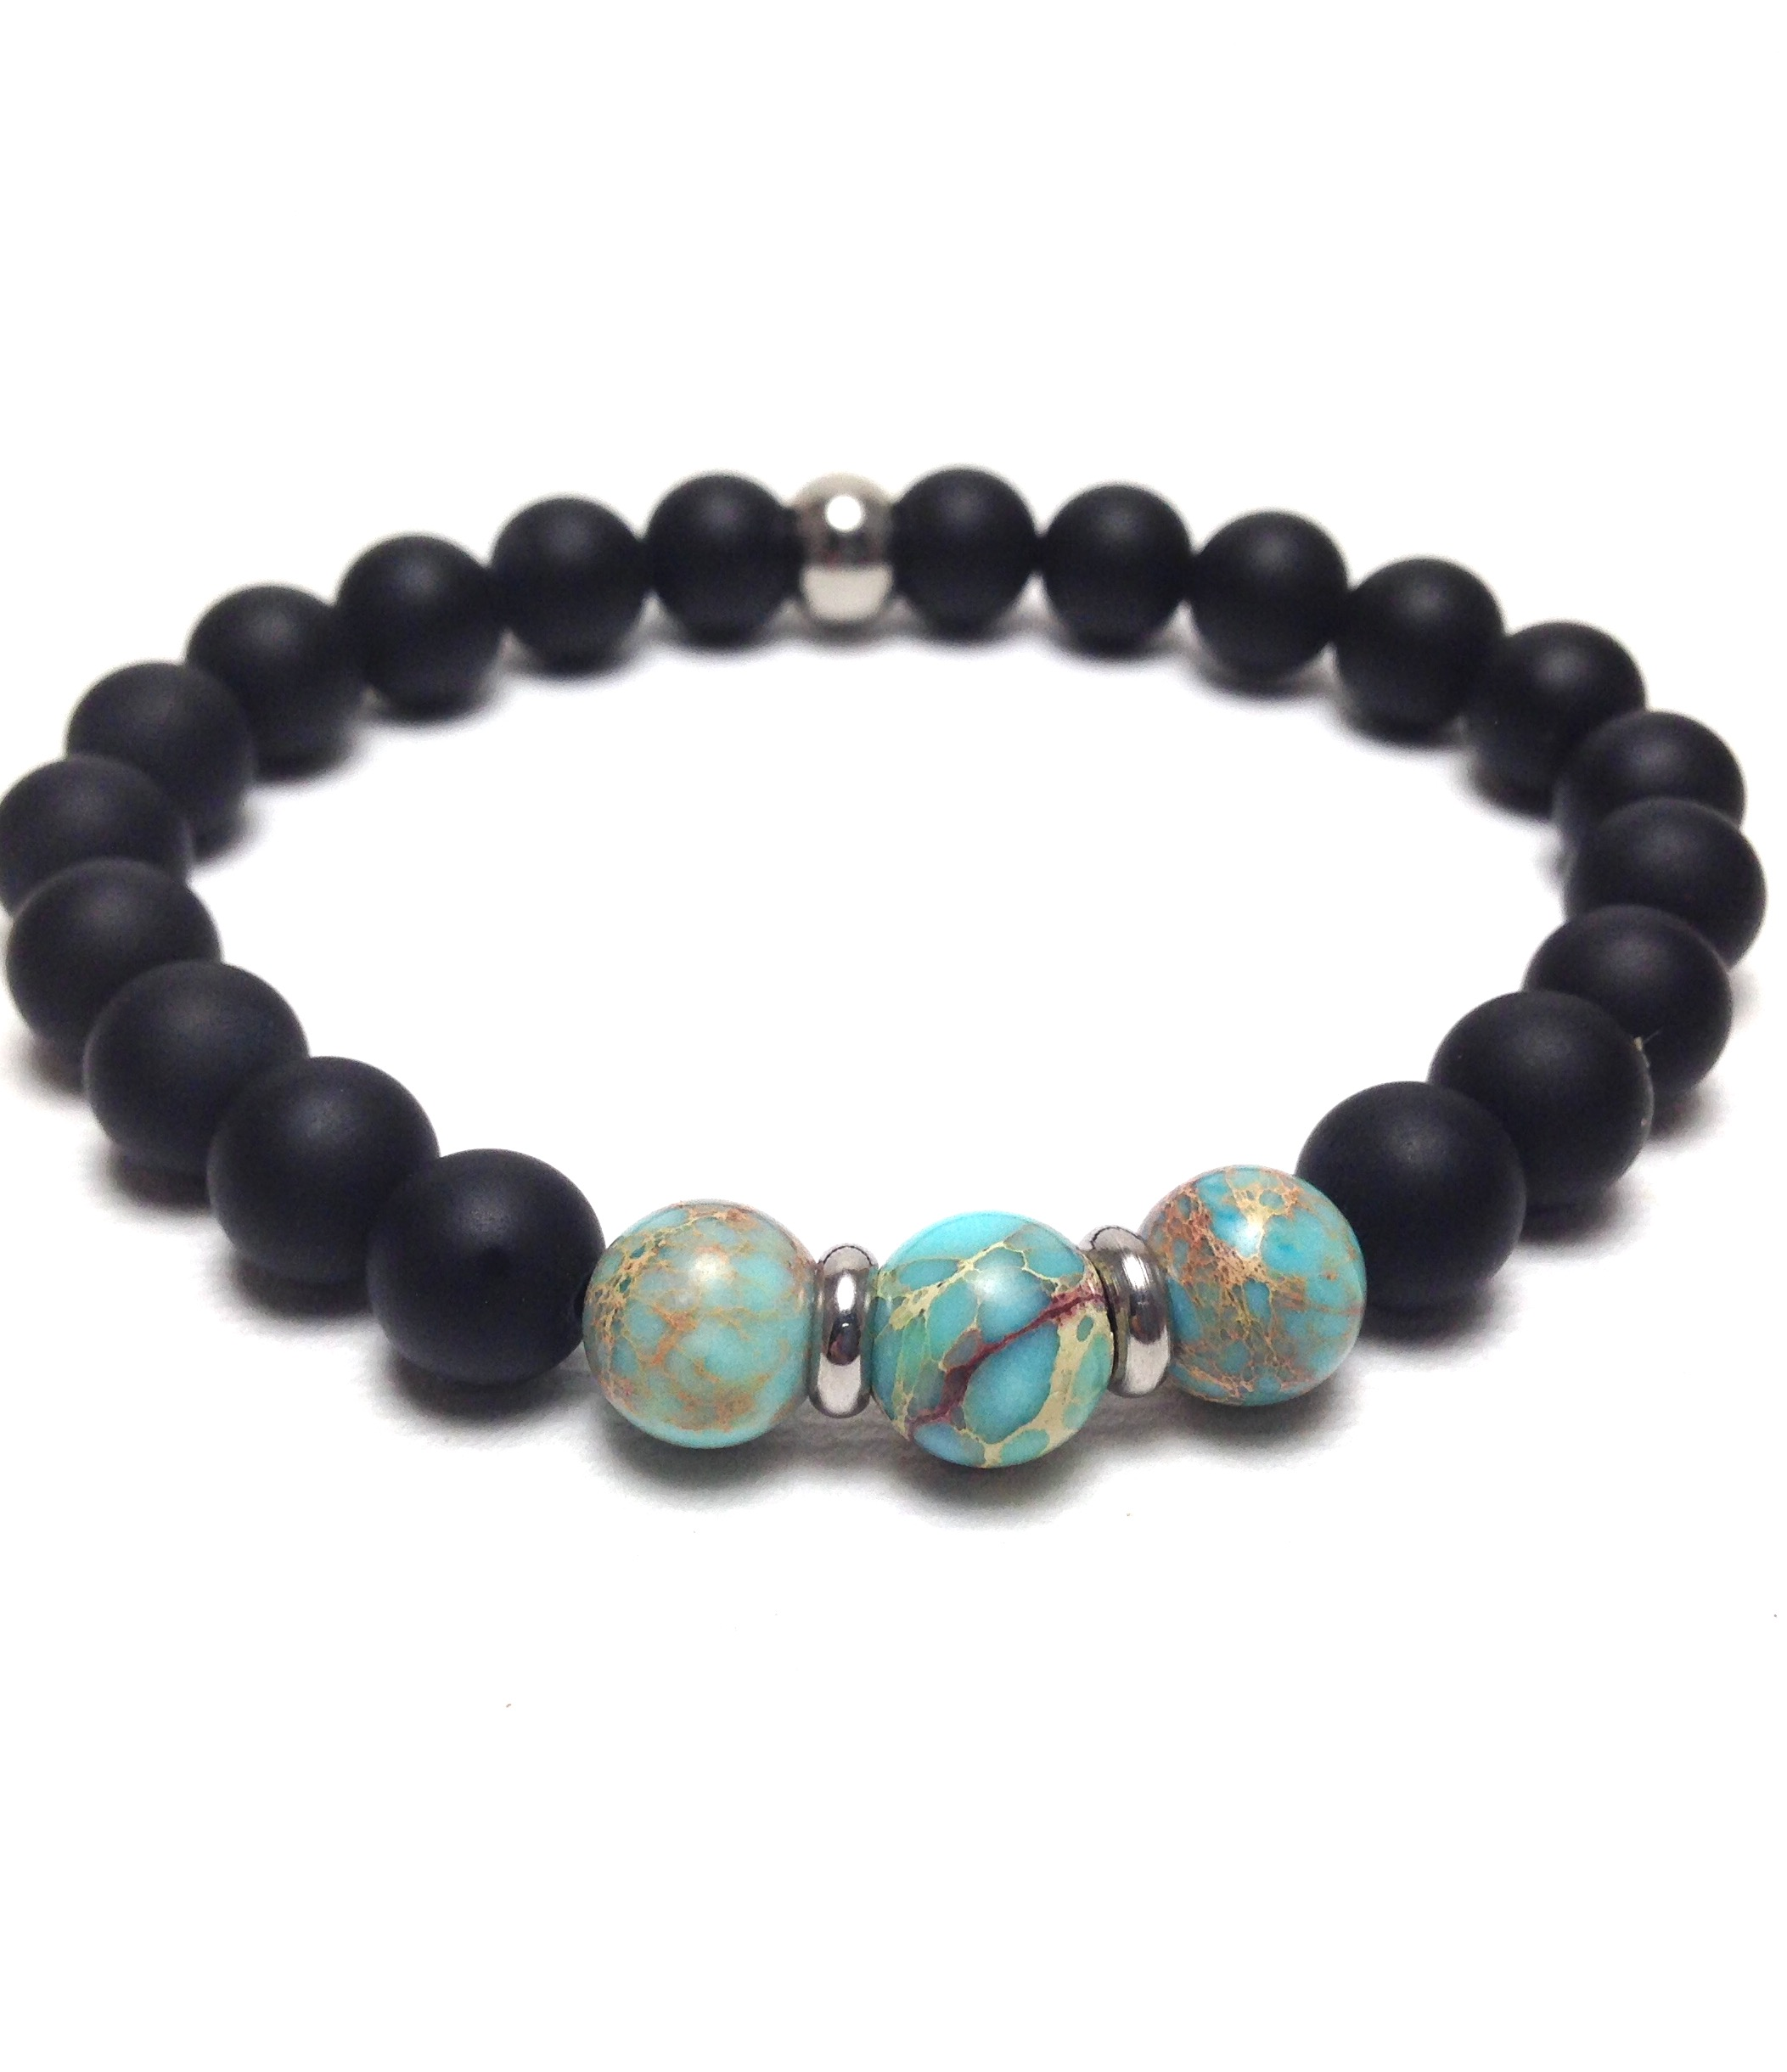 Men's jasper and onyx stainless steel bracelet